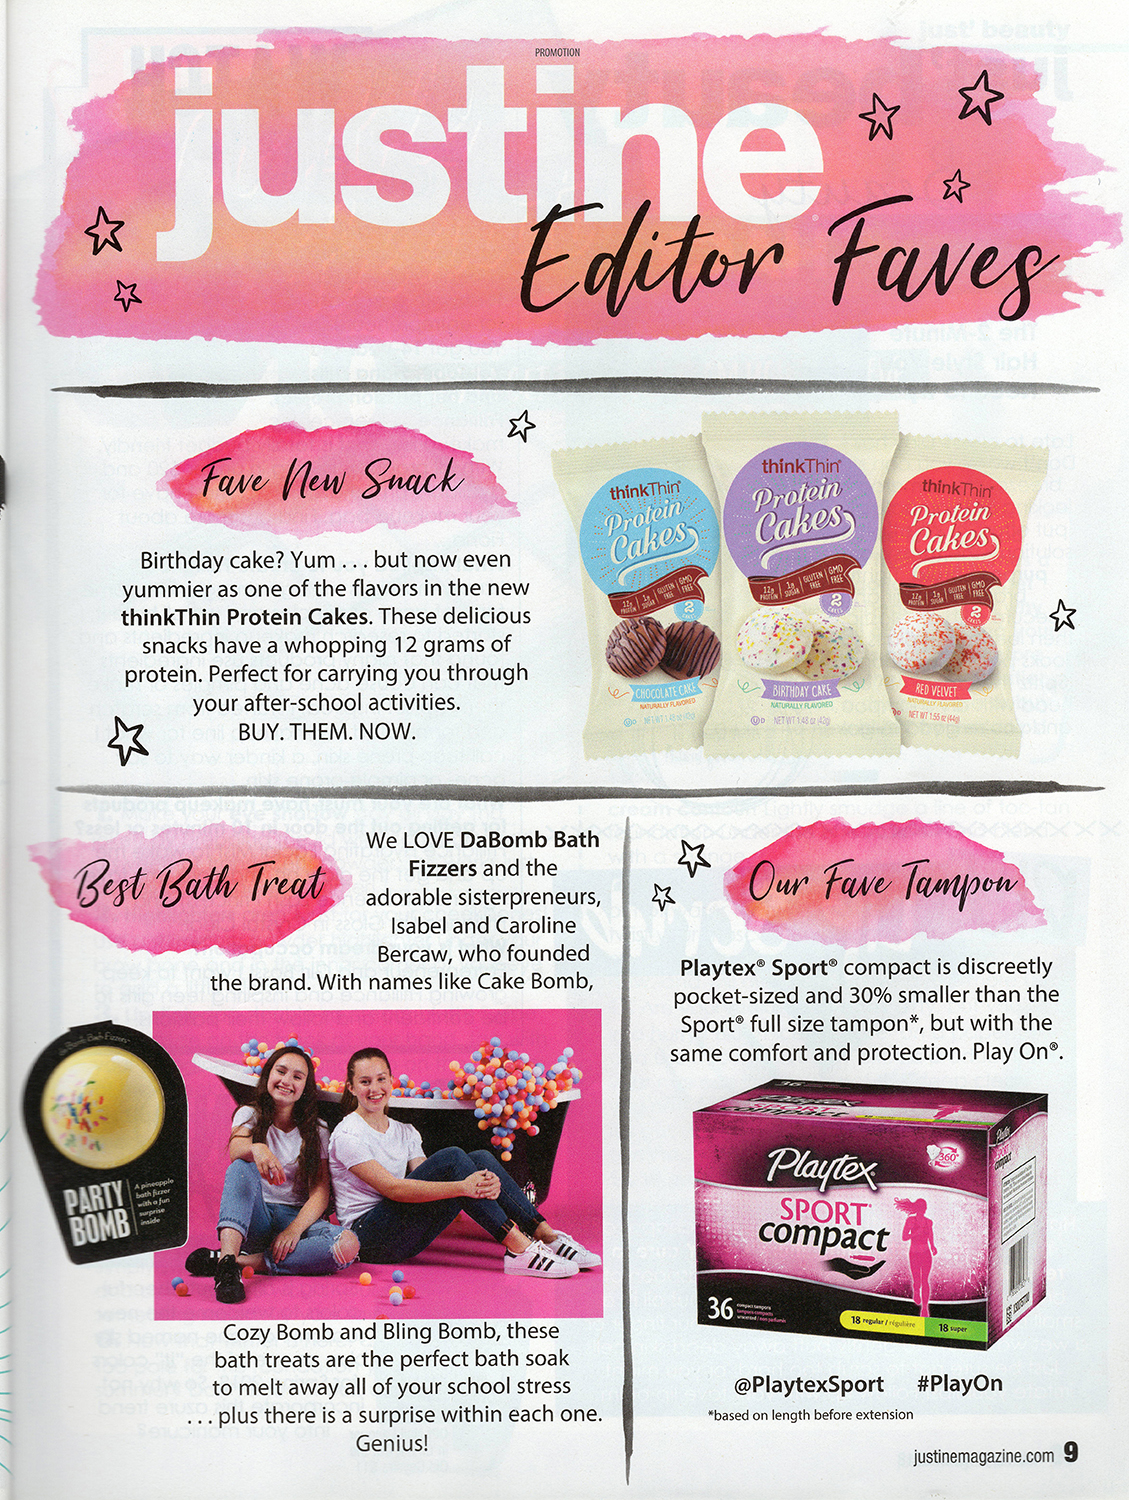 Da Bomb Bath Fizzers sisters and yellow party bomb in Justine magazine Editor Faves feature as best bath treat.